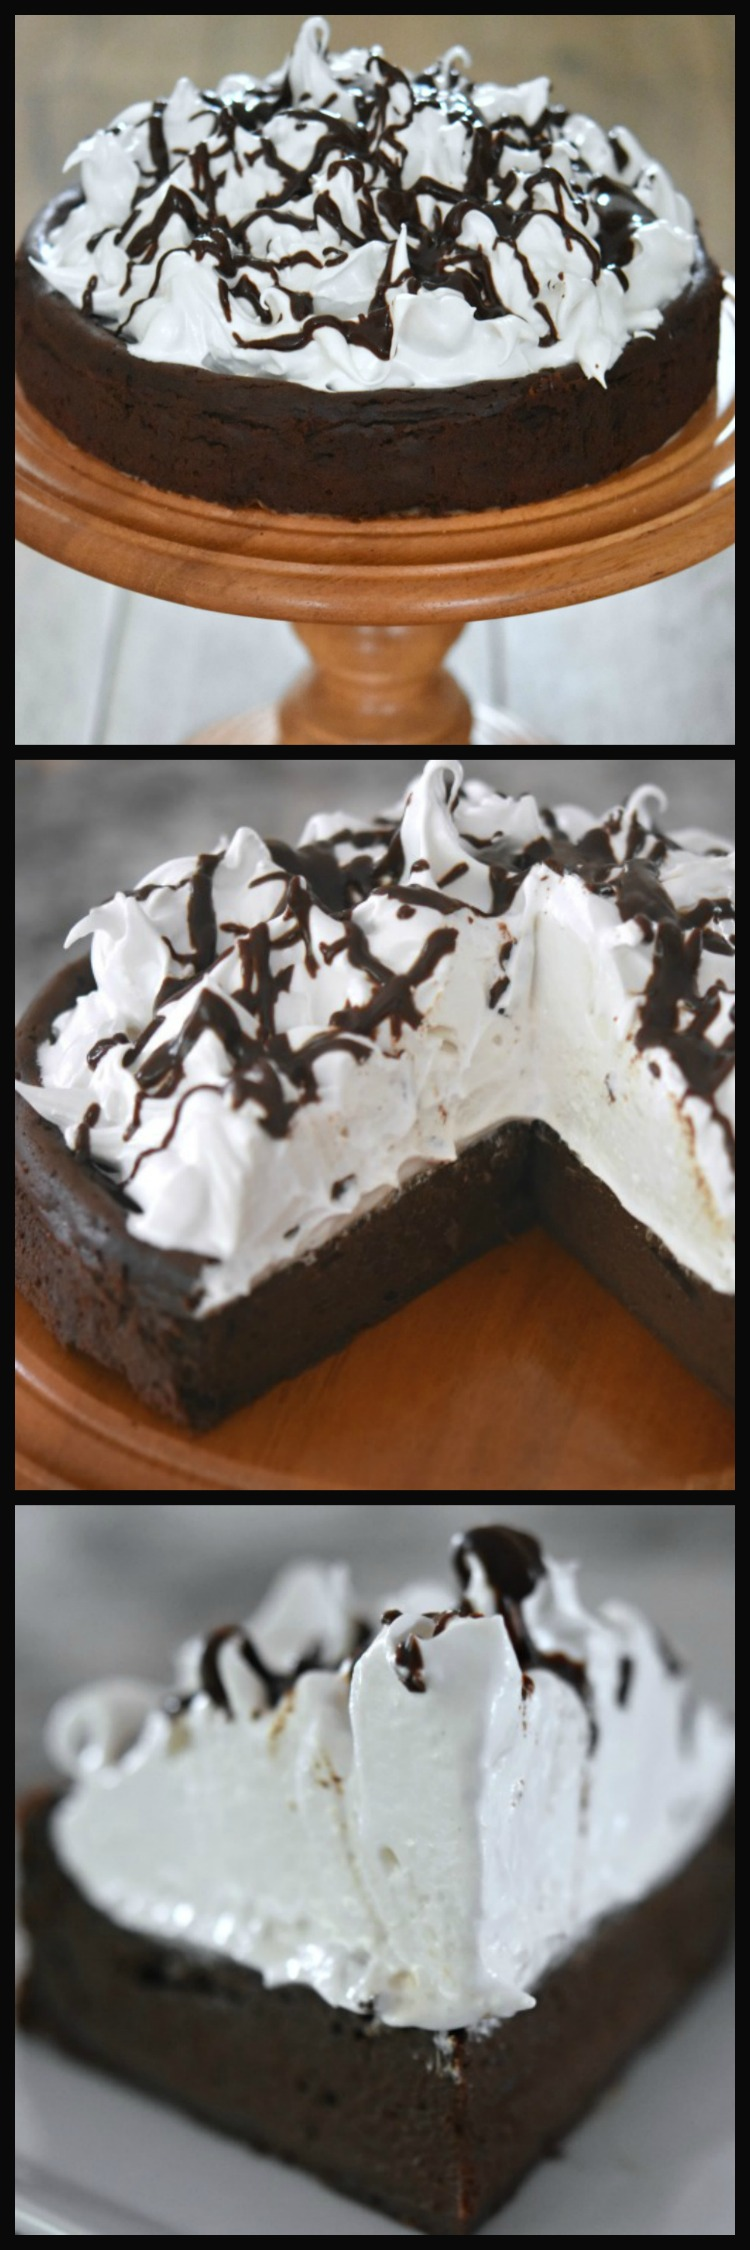 Flourless Chocolate Cake with Marshmallow Frosting